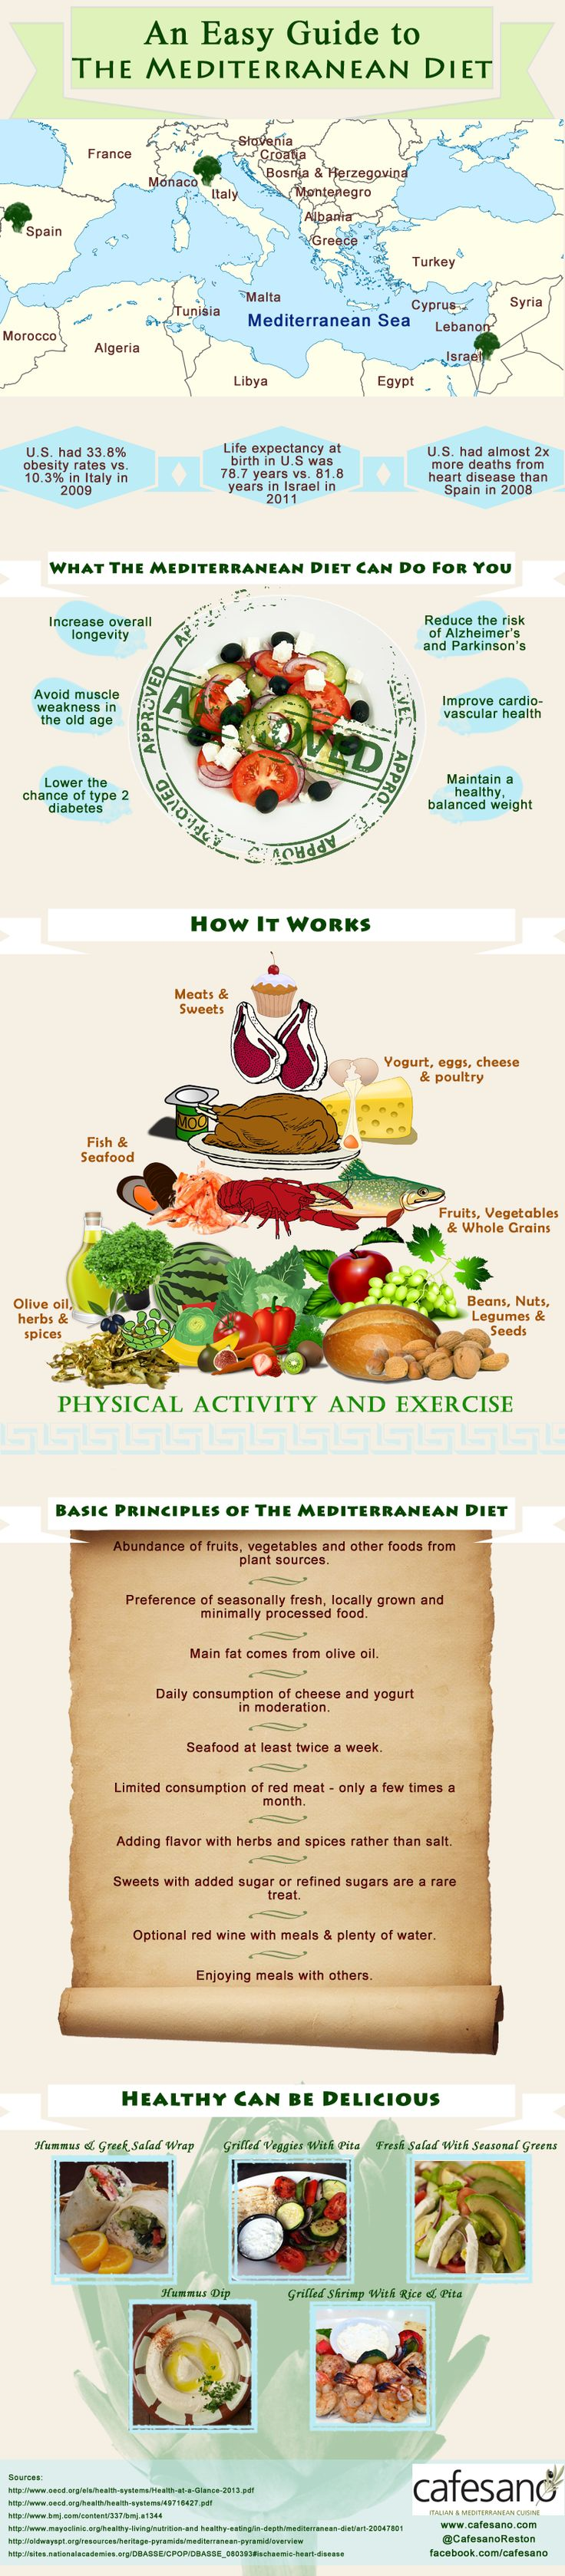 An Easy Guide to the Mediterranean Diet   #diet #Health #Food #infographic